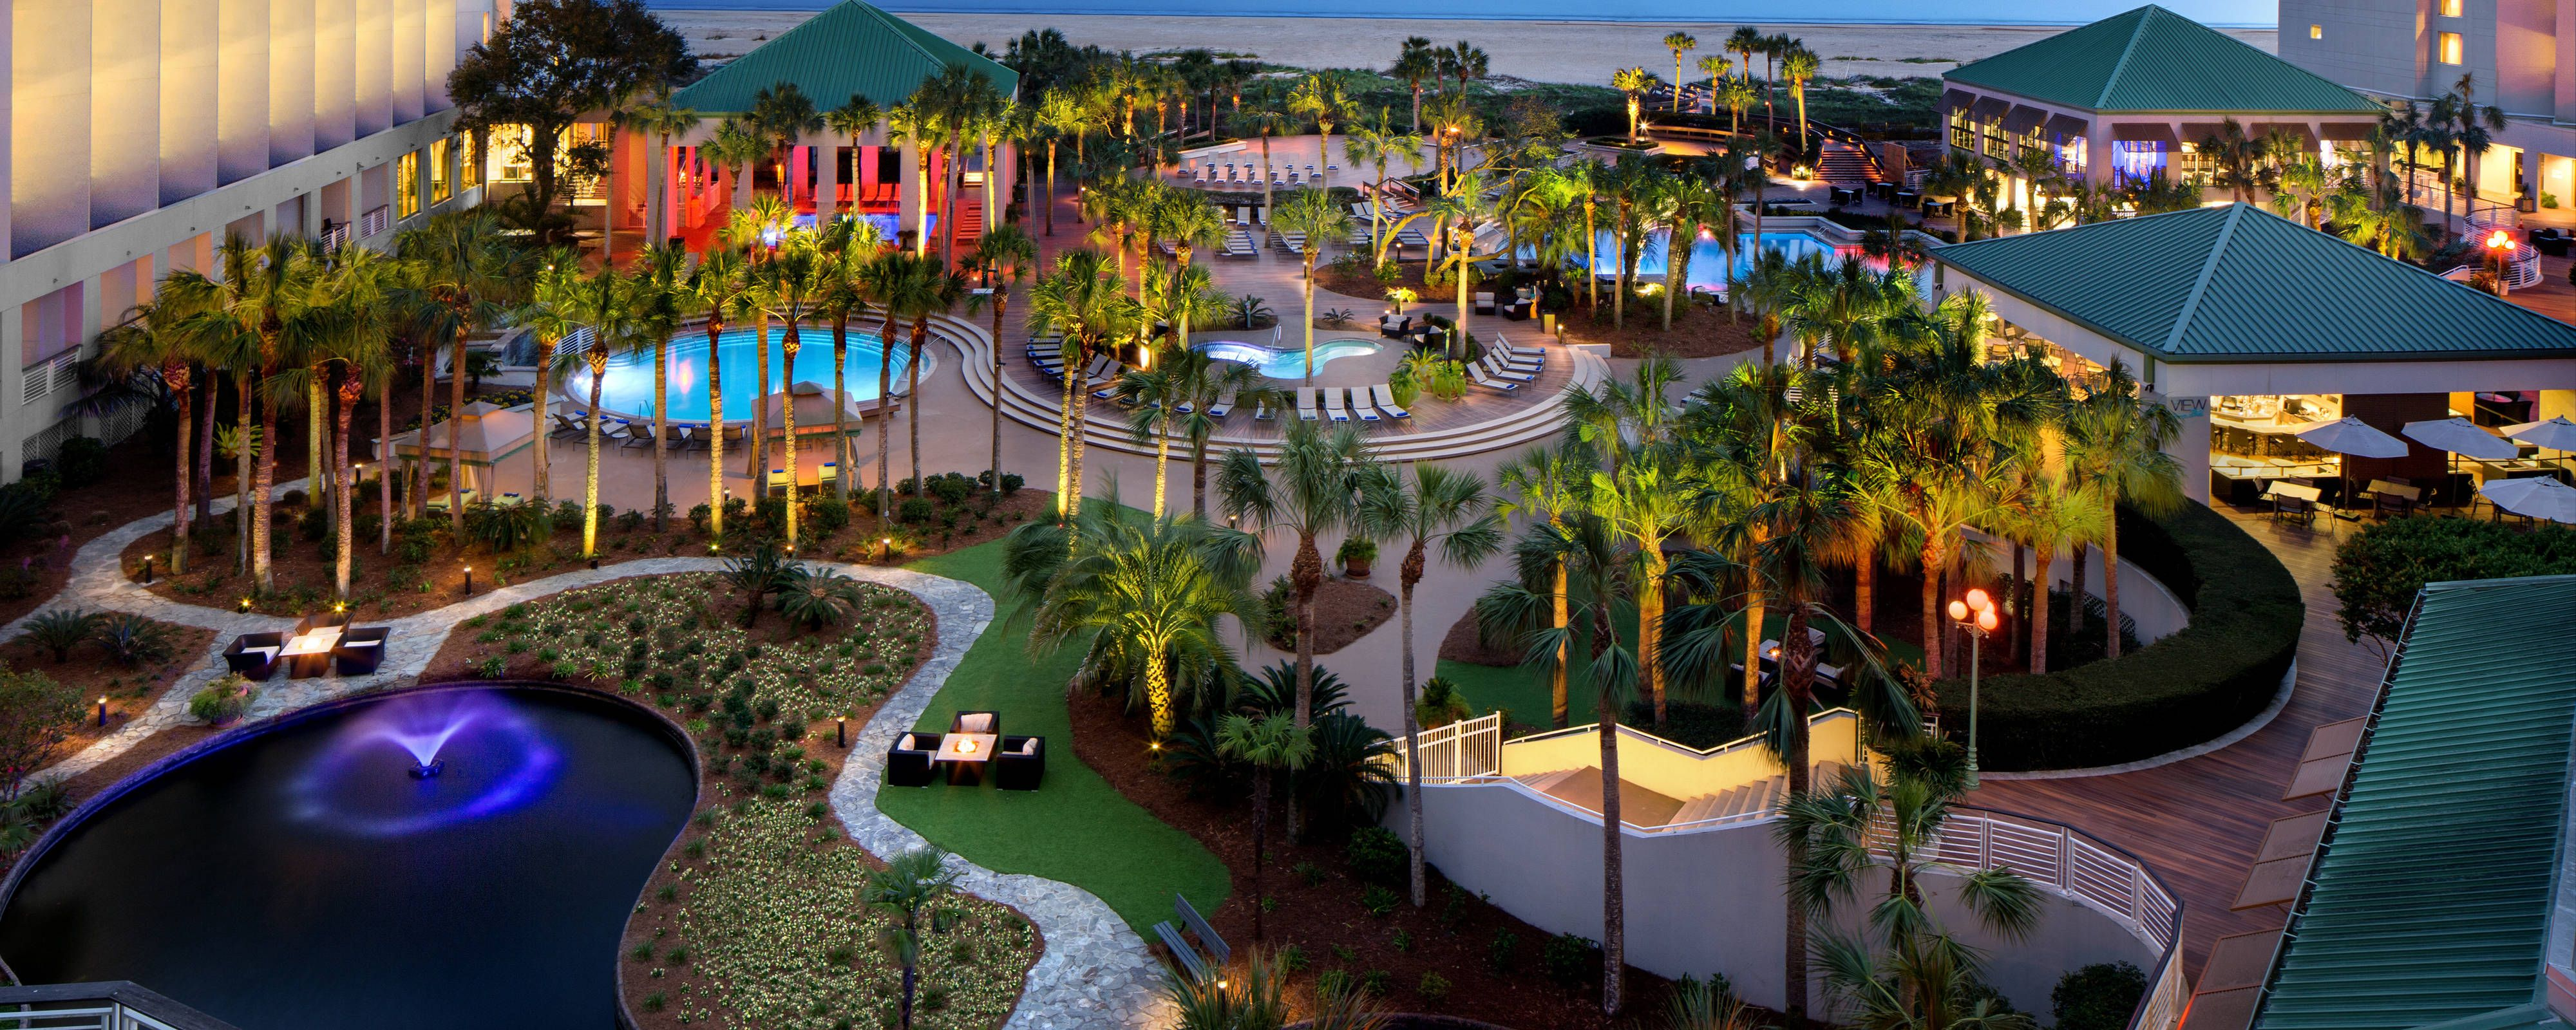 View The Westin Hilton Head Island Resort Spa Hotel Photo Tour Images Hilton Head Island Resorts Hilton Head Island South Carolina Hotels Hilton Head Island